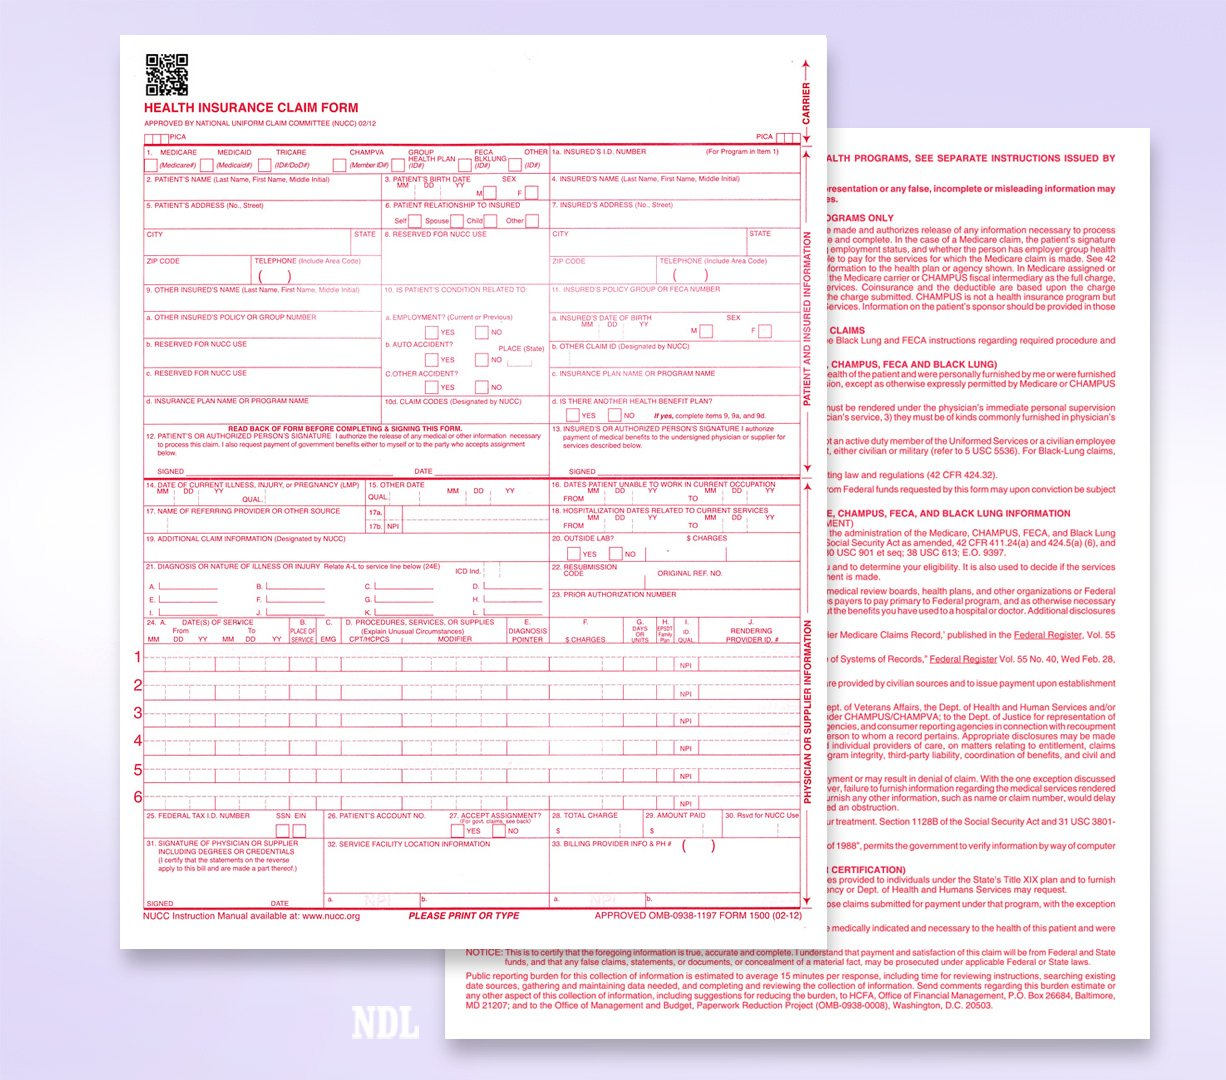 CMS 1500 / HCFA 1500 Insurance Claim Forms - Laser / Ink-Jet Compatible (New Version 02/12) Letter Size 8-12'' x 11'' 500 Sheets Per Ream